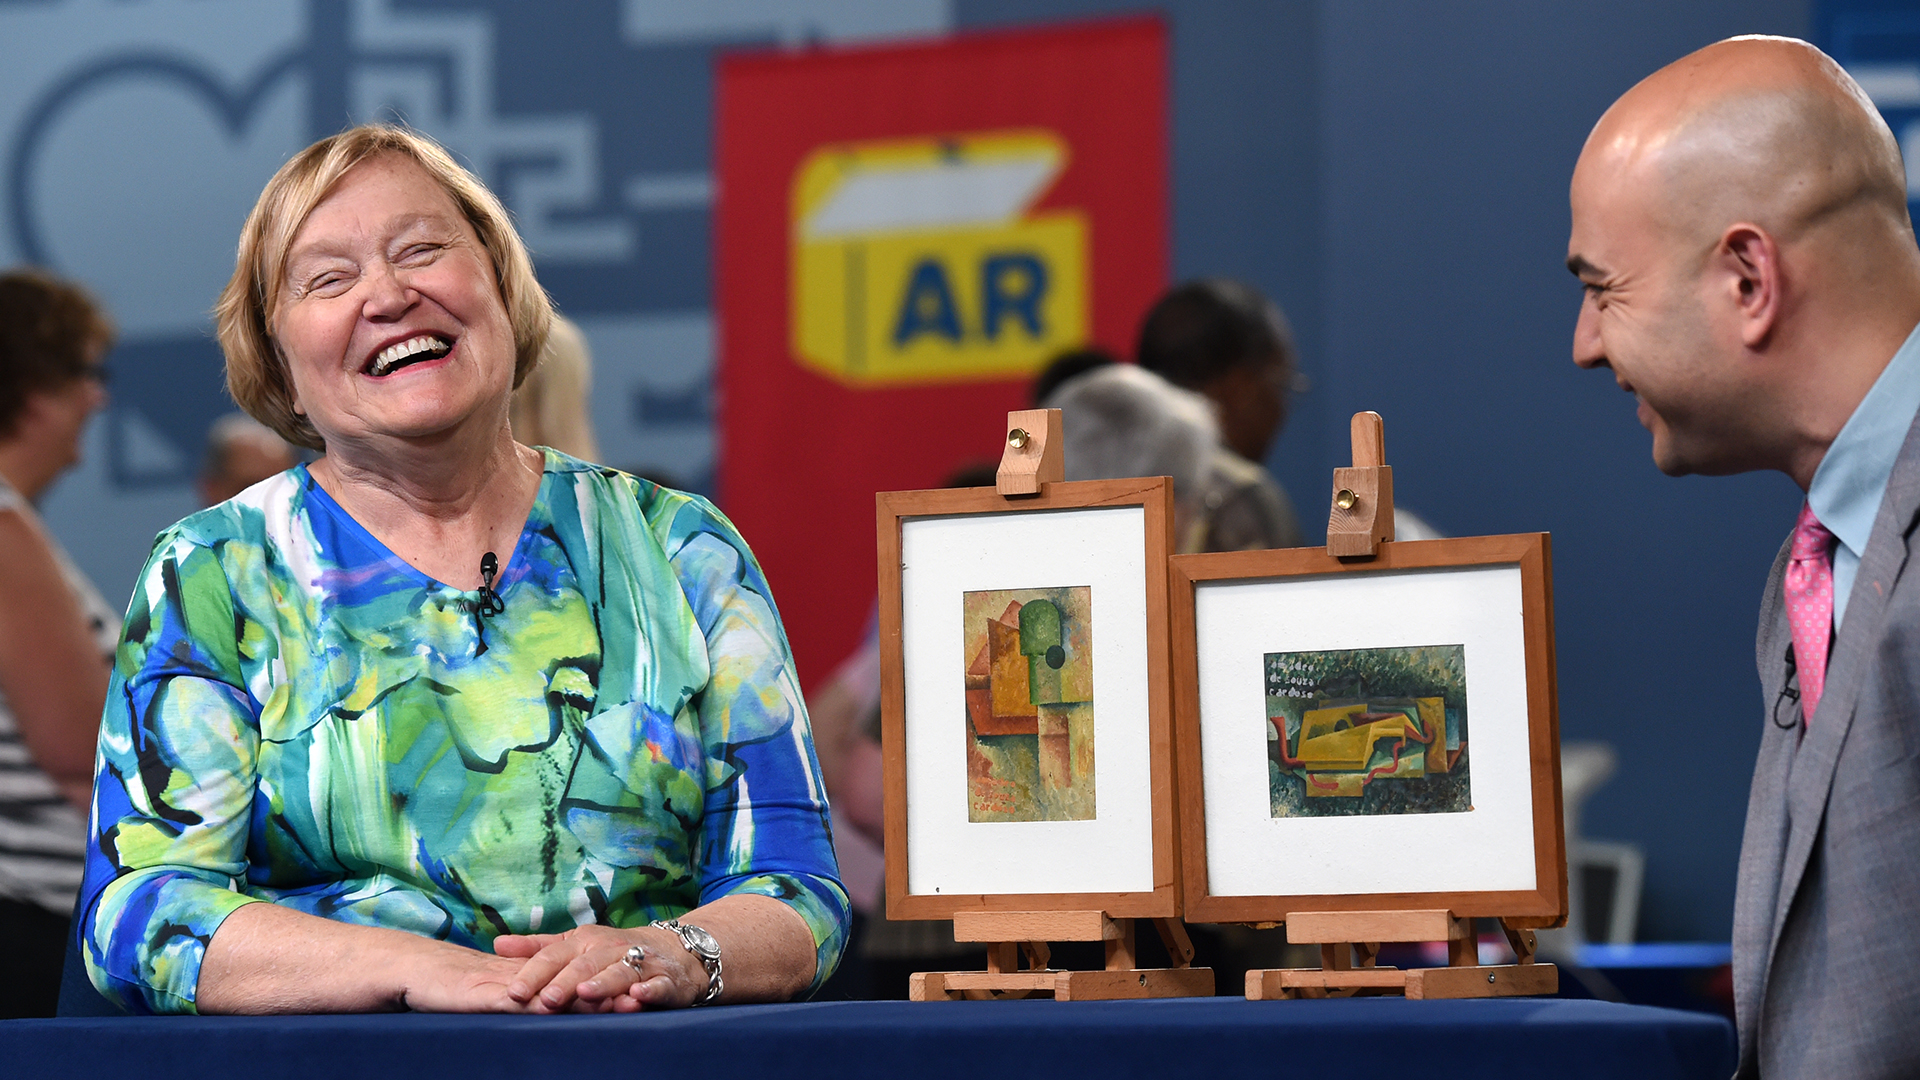 Antiques Roadshow: Season 21 Premiering on PBS with a Big ...